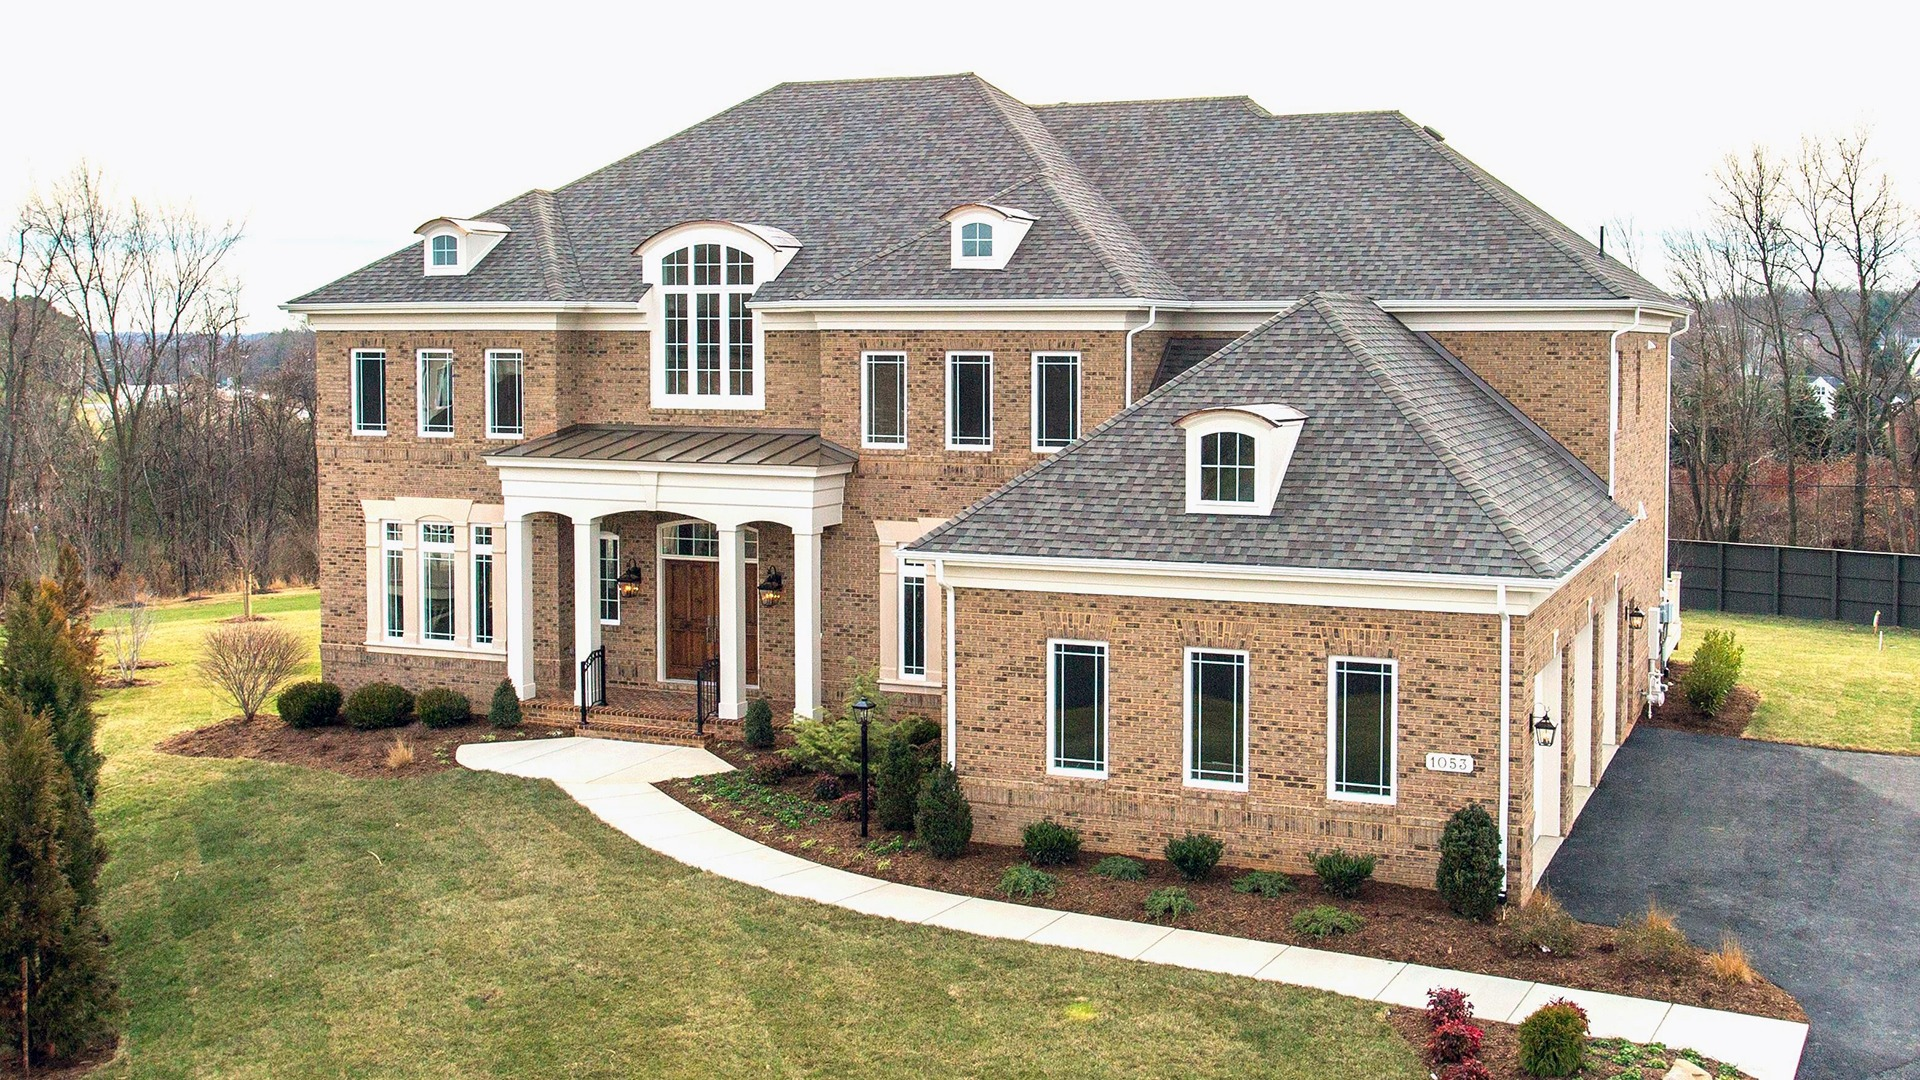 The front elevation of the Winthrop on Fallsgate Homesite 2. Some optional features shown.